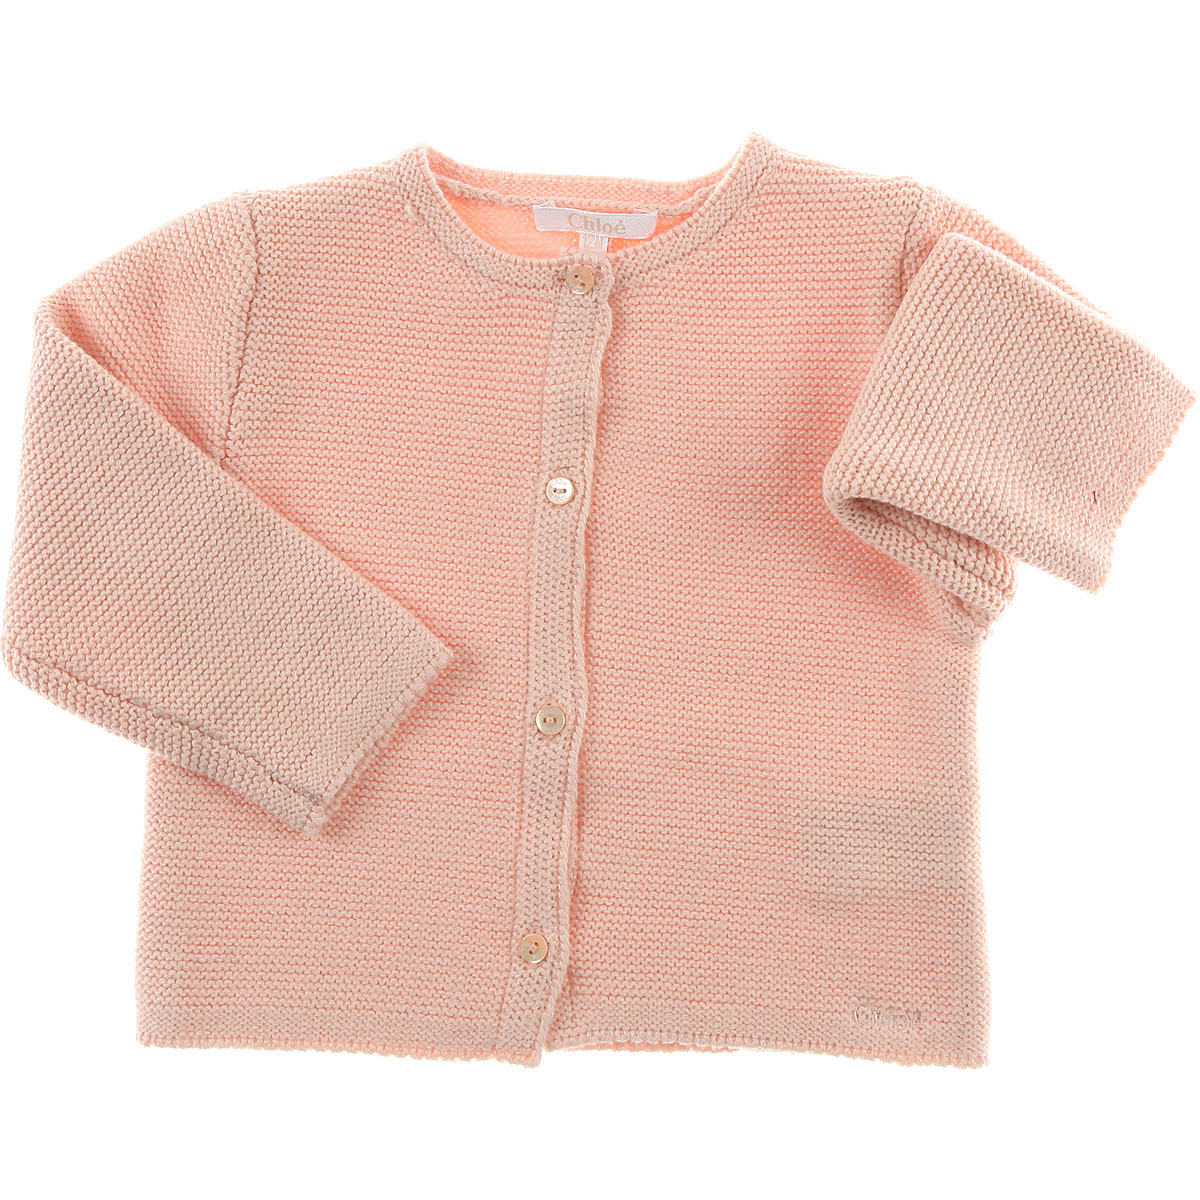 Image of Chloe Baby Sweaters for Girls, Pink, Cotton, 2017, 12M 18M 2Y 6M